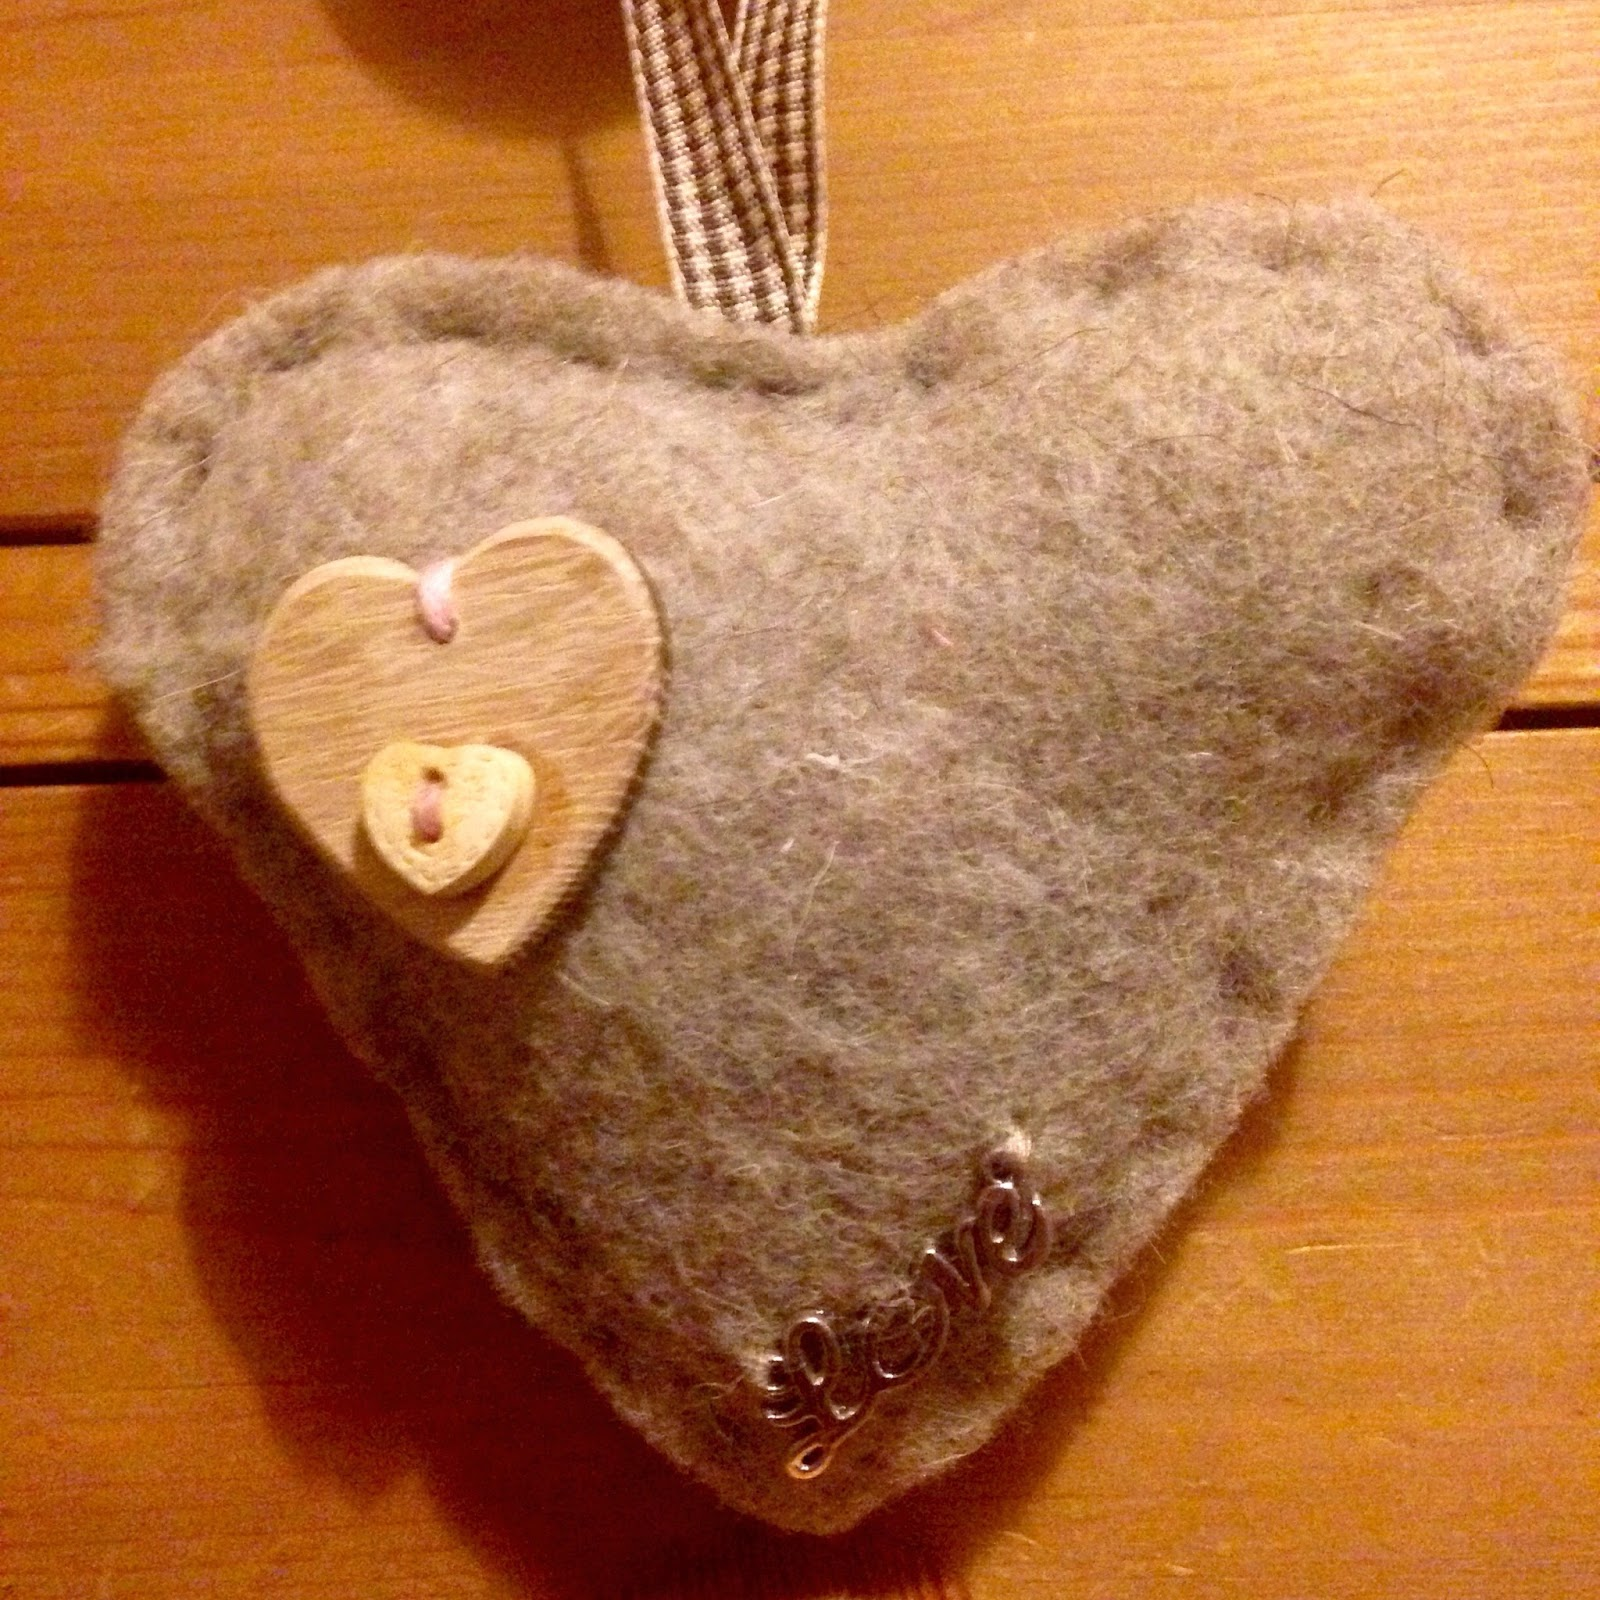 Cloth heart with button and love sewn on it